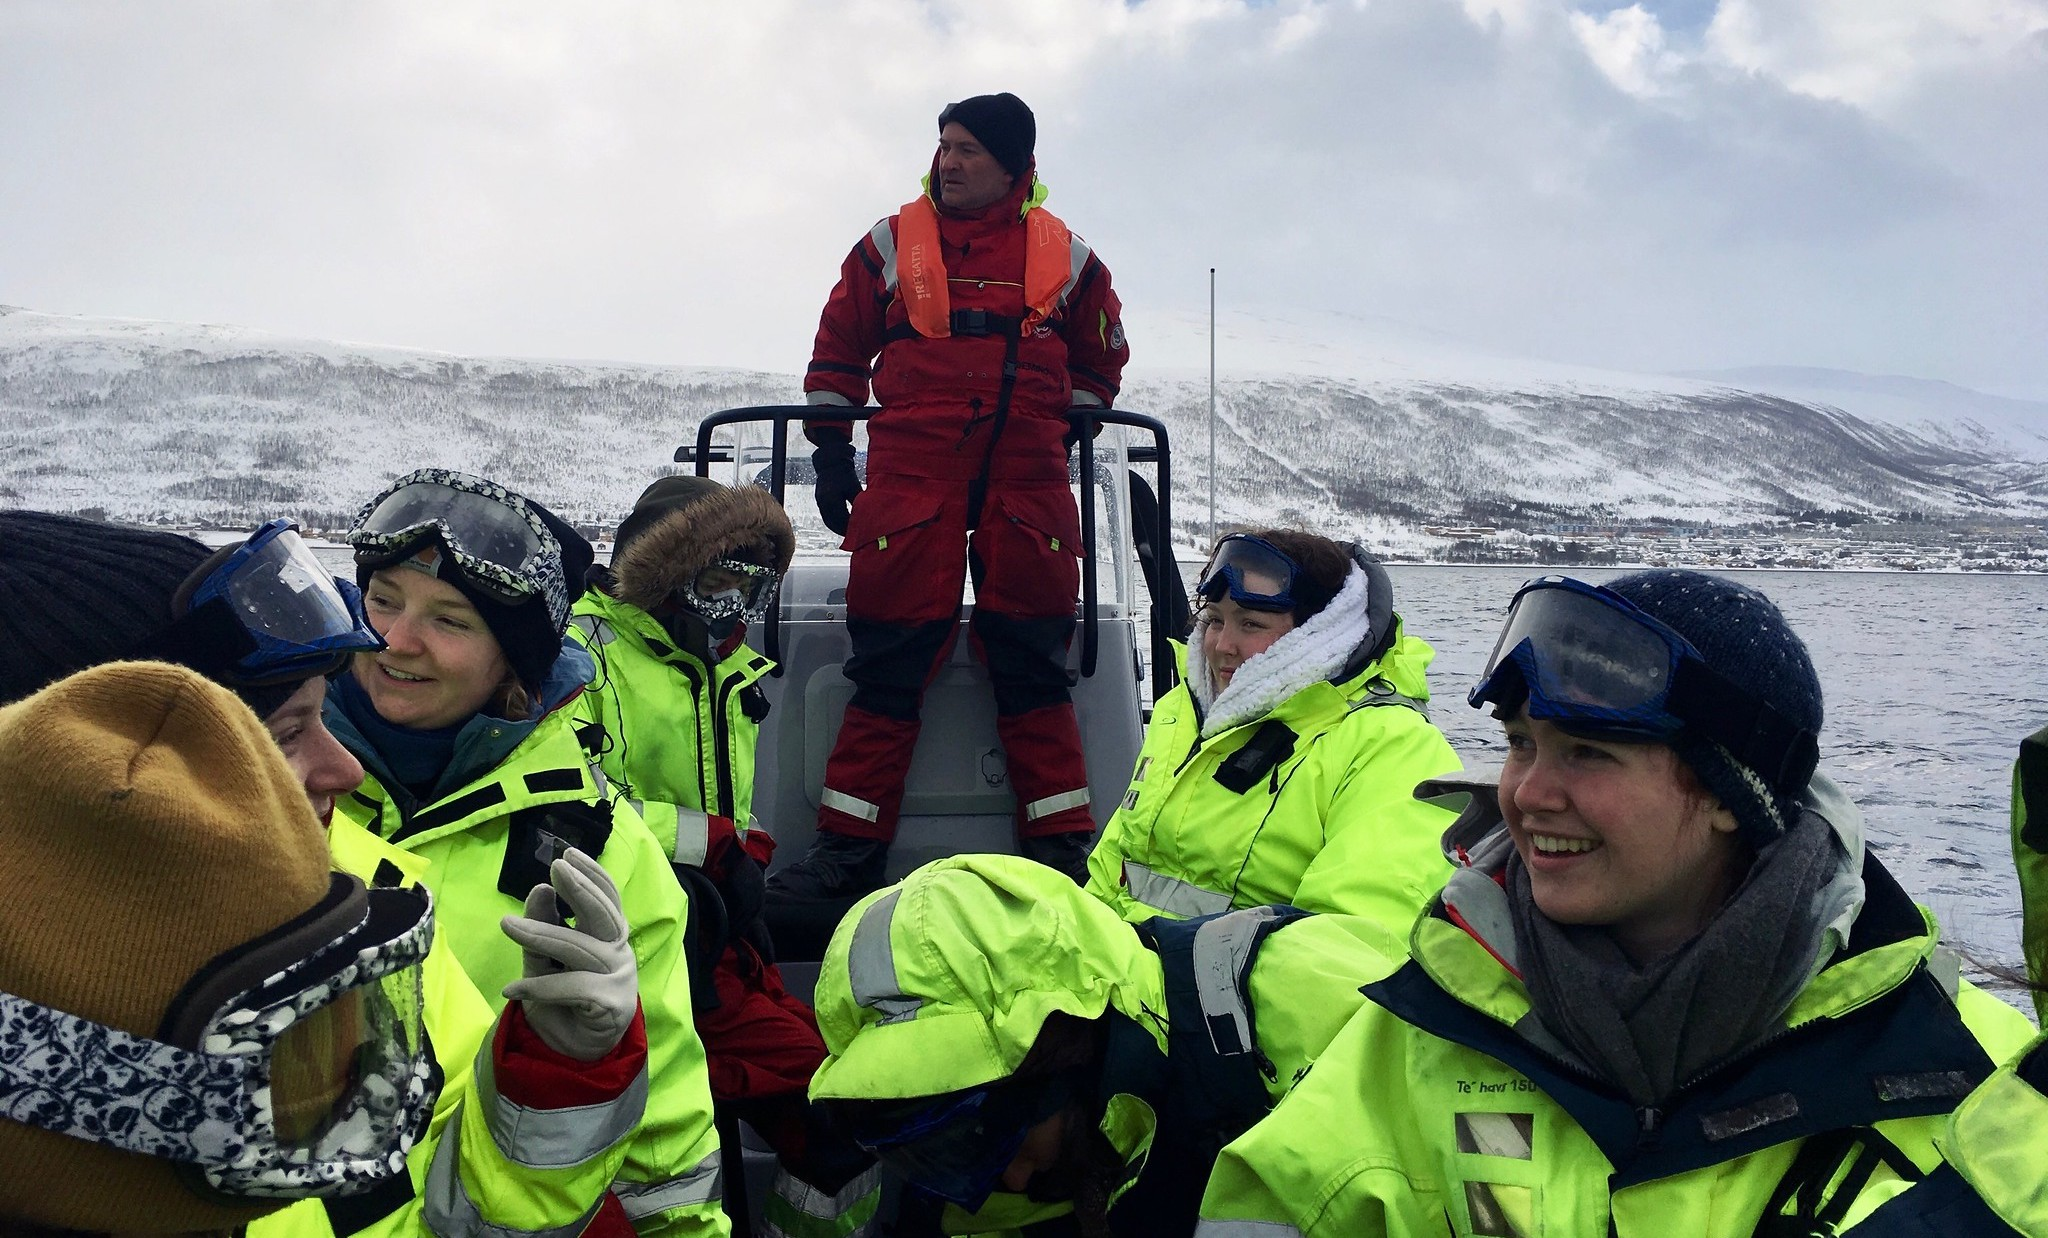 Students in a small research boat with snowy hills in background